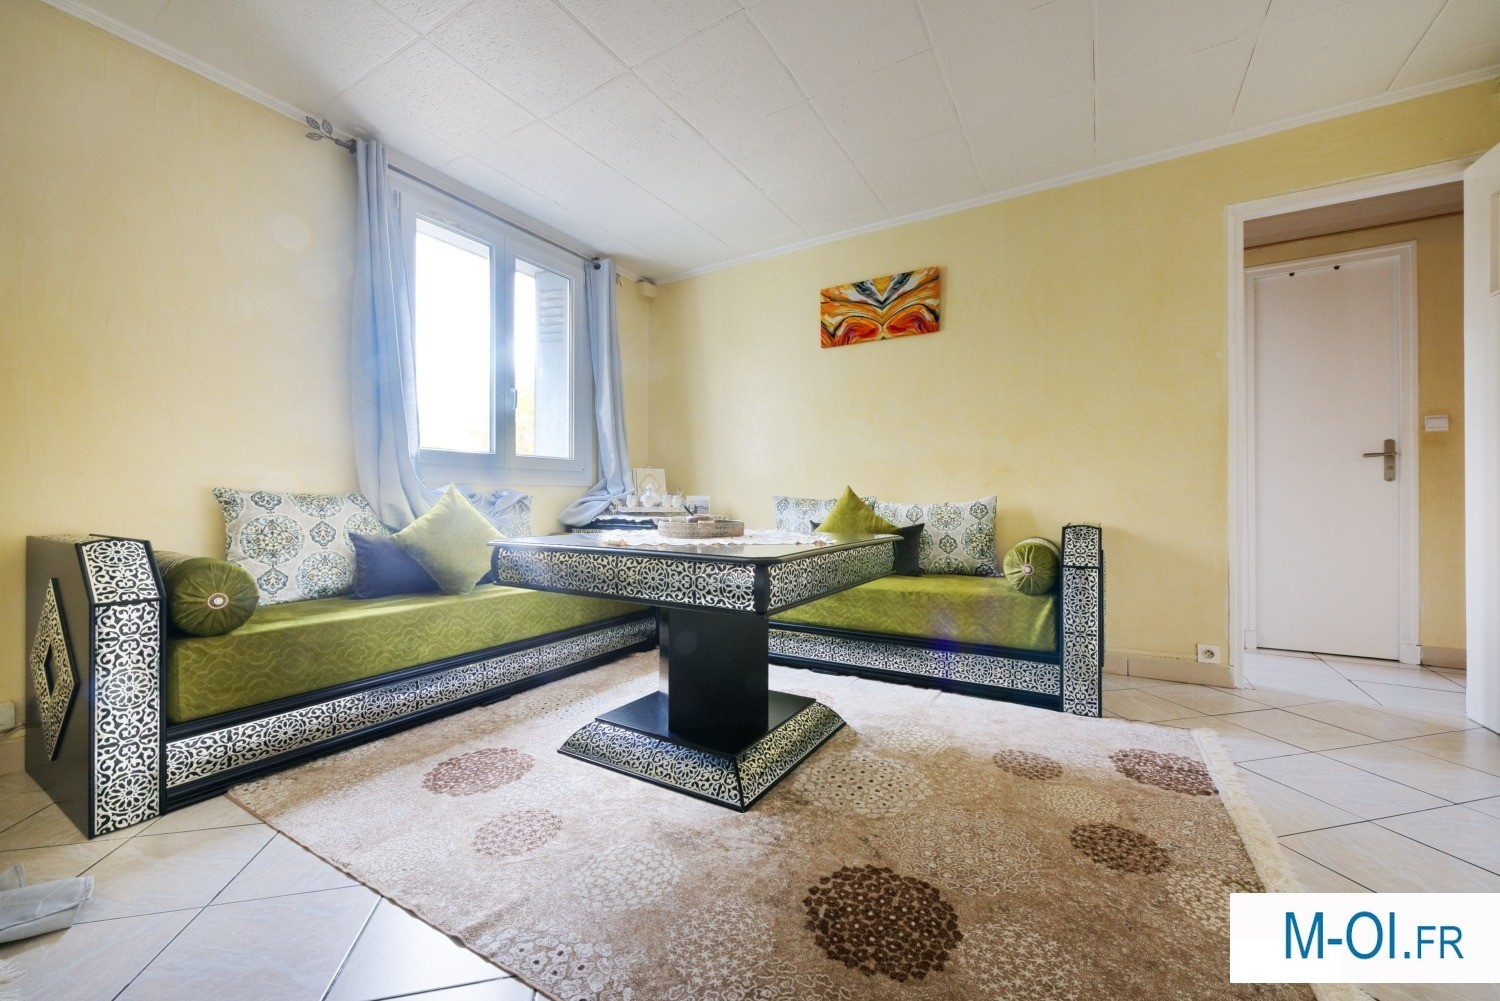 13015-marseille-vente-appartement-4-pieces_8.jpg